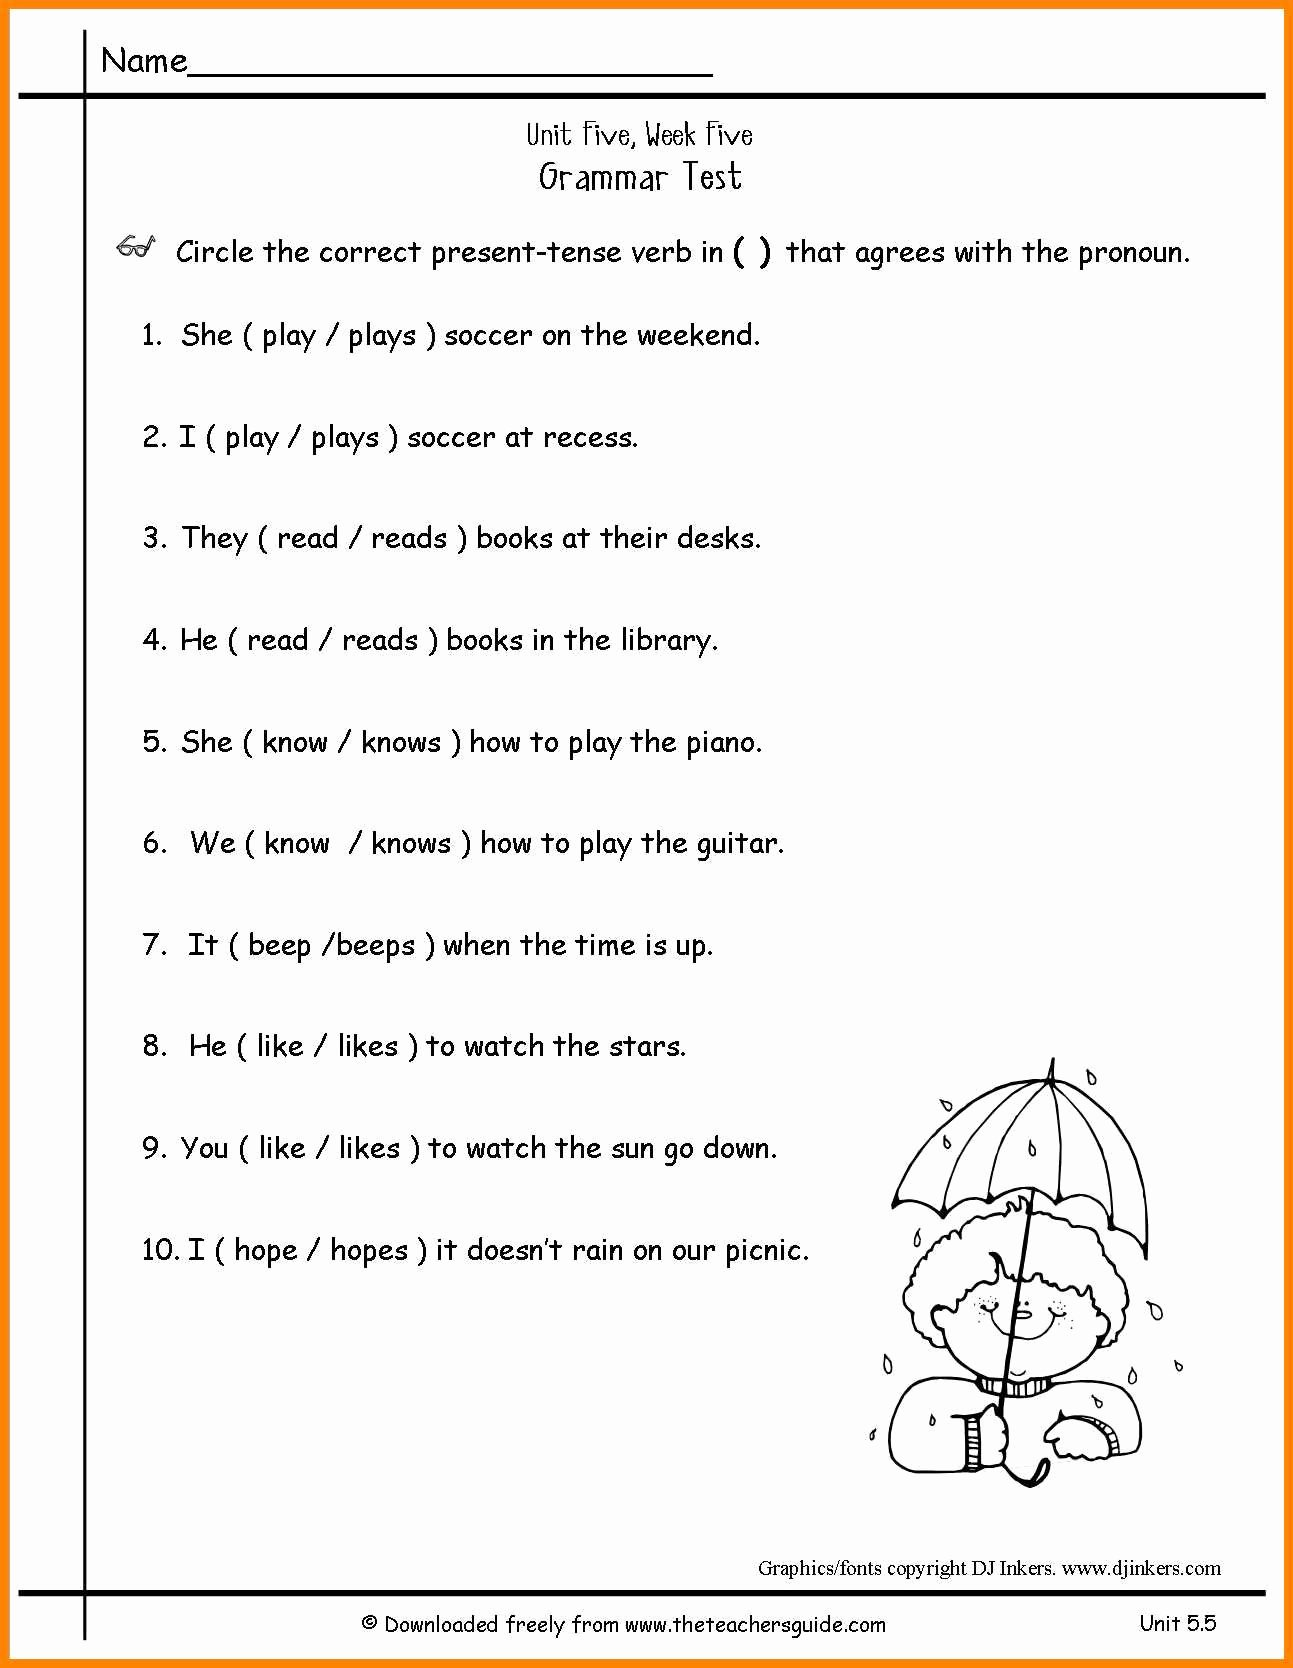 Pronoun Worksheets for 2nd Graders New Free Pronoun Worksheet for 2nd Grade